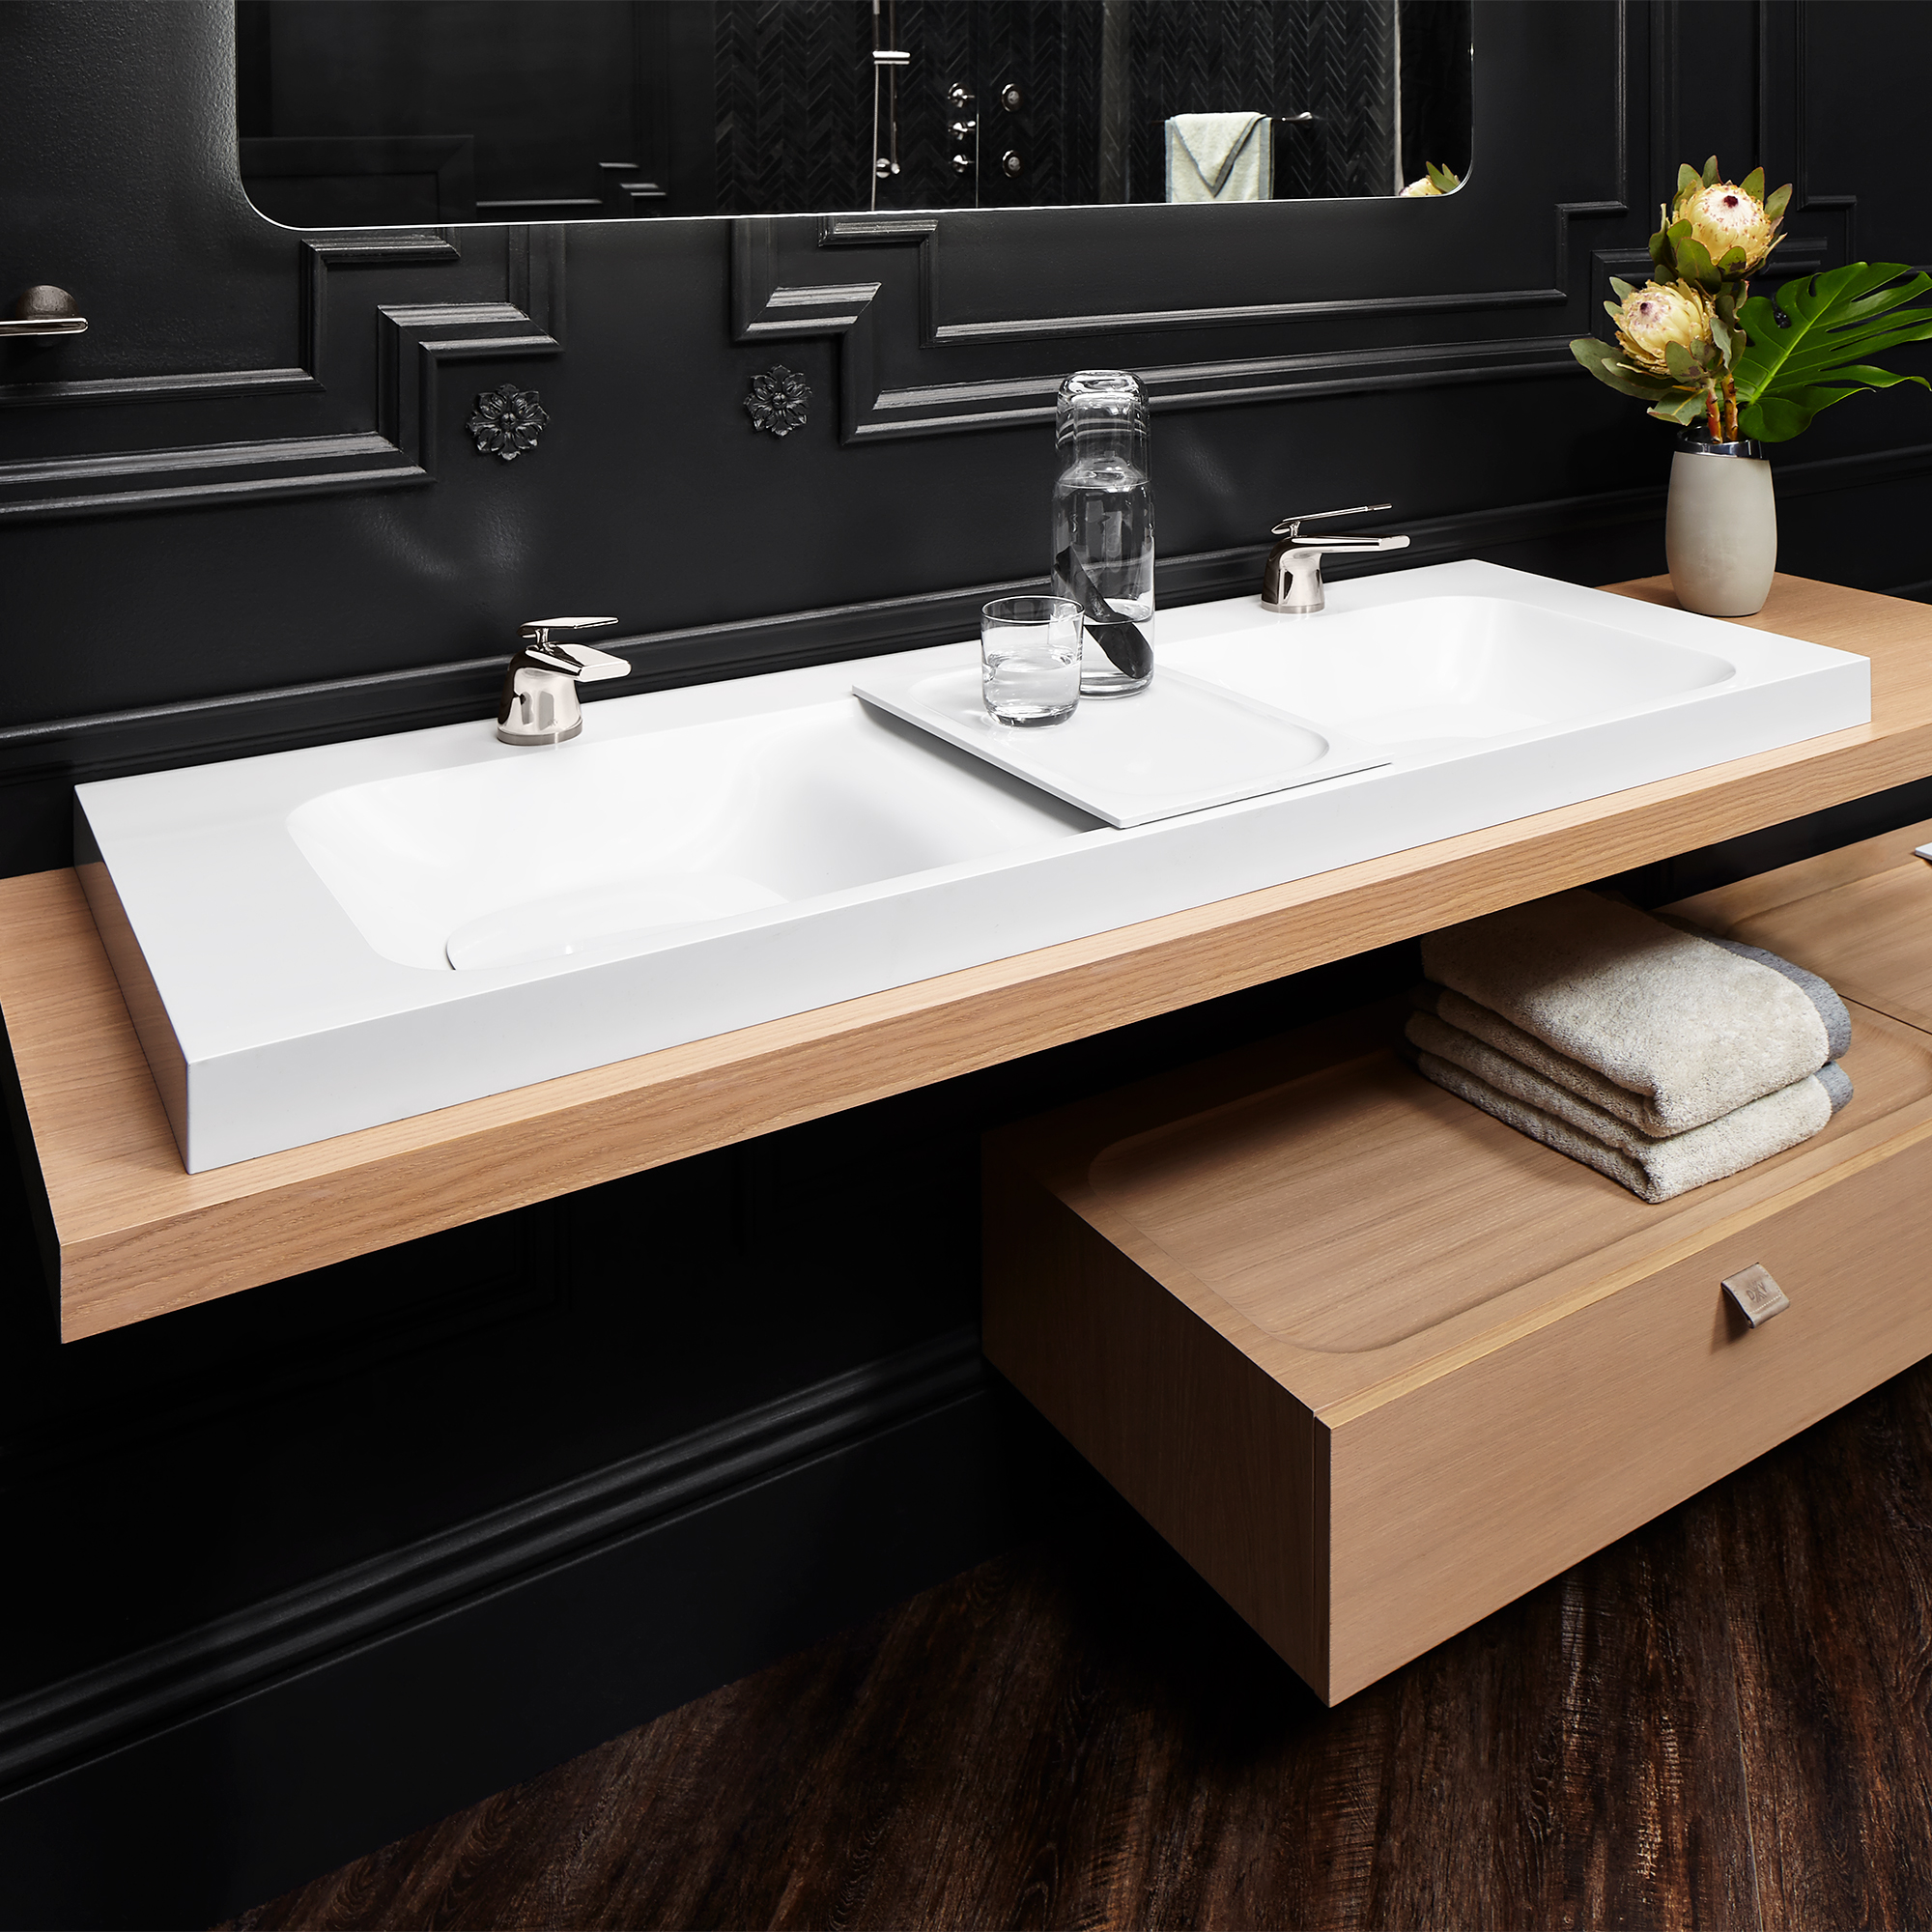 double sinks in a small bathroom dxv modulus 55 inch single bathroom sink dxv 25250